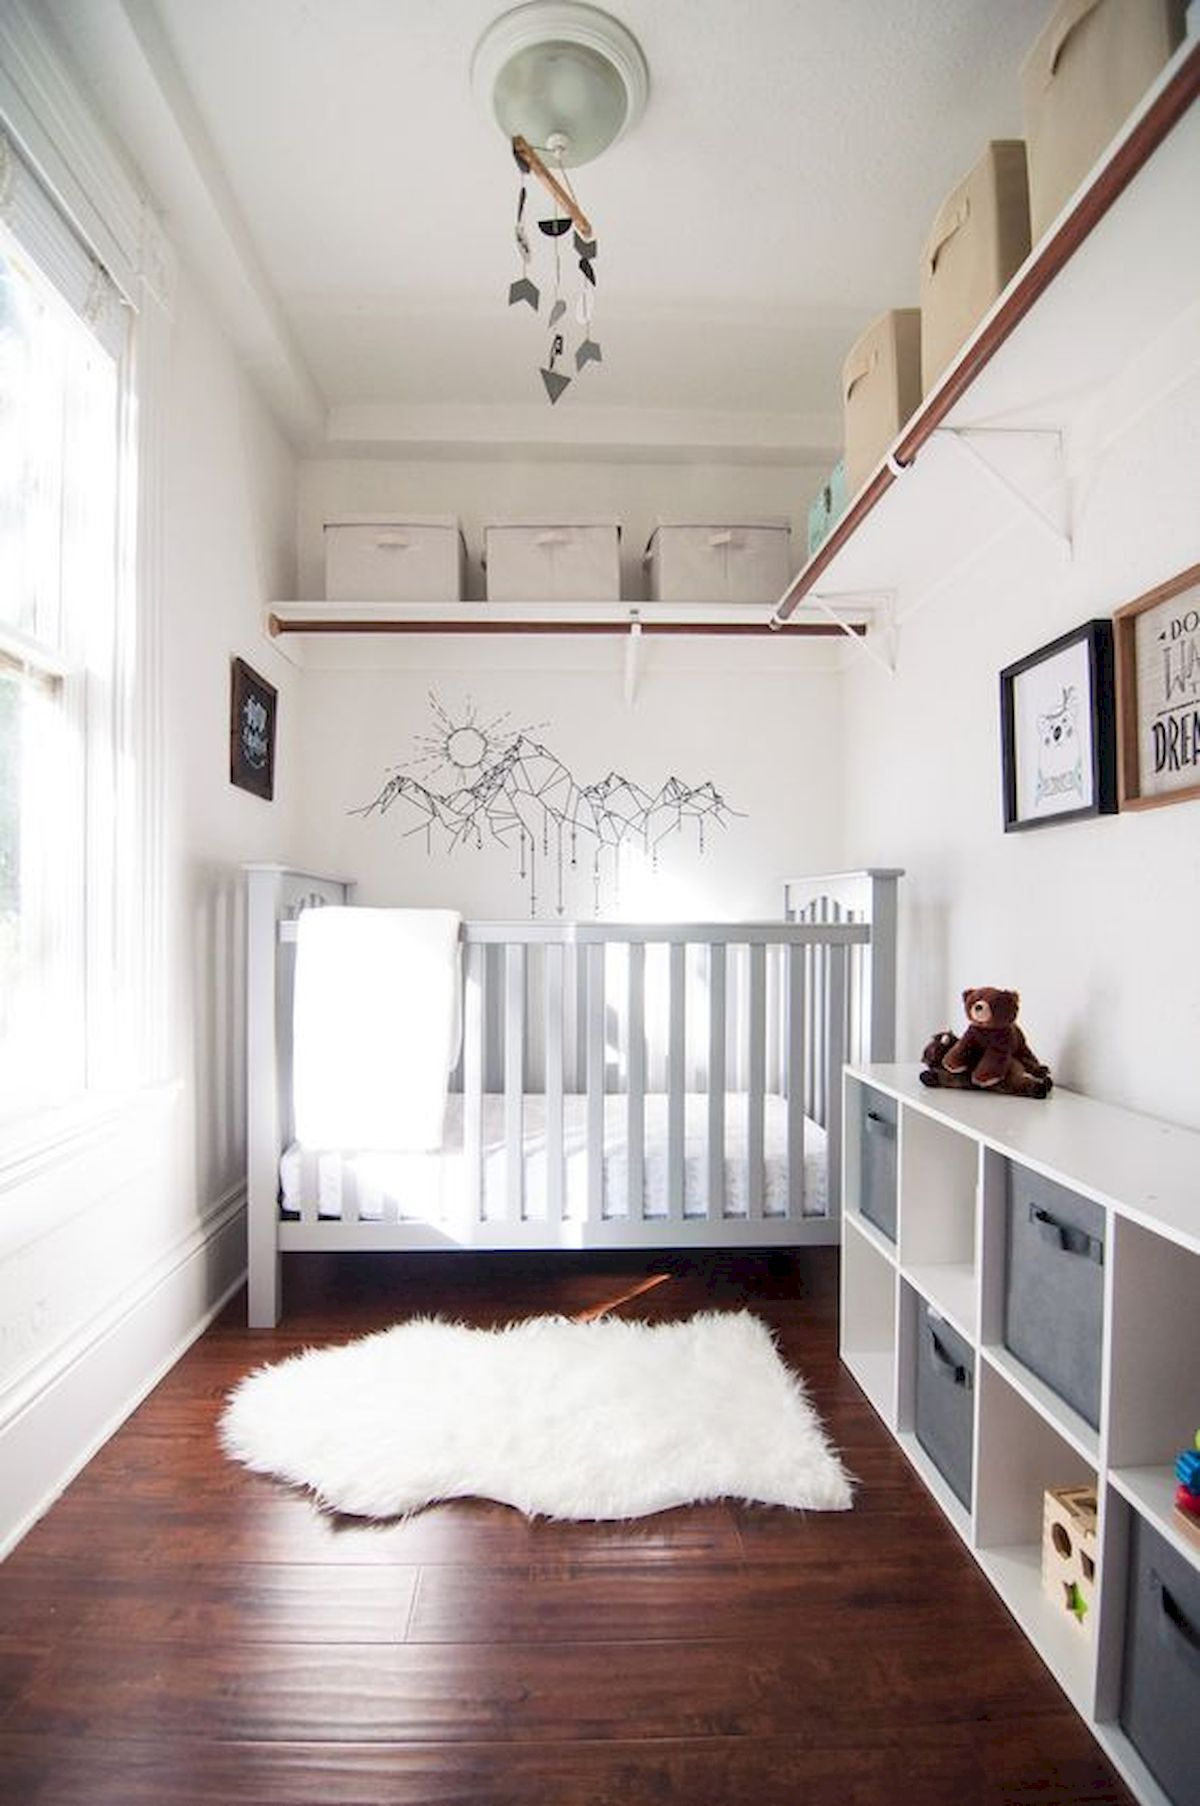 23 Awesome Small Nursery Design Ideas images